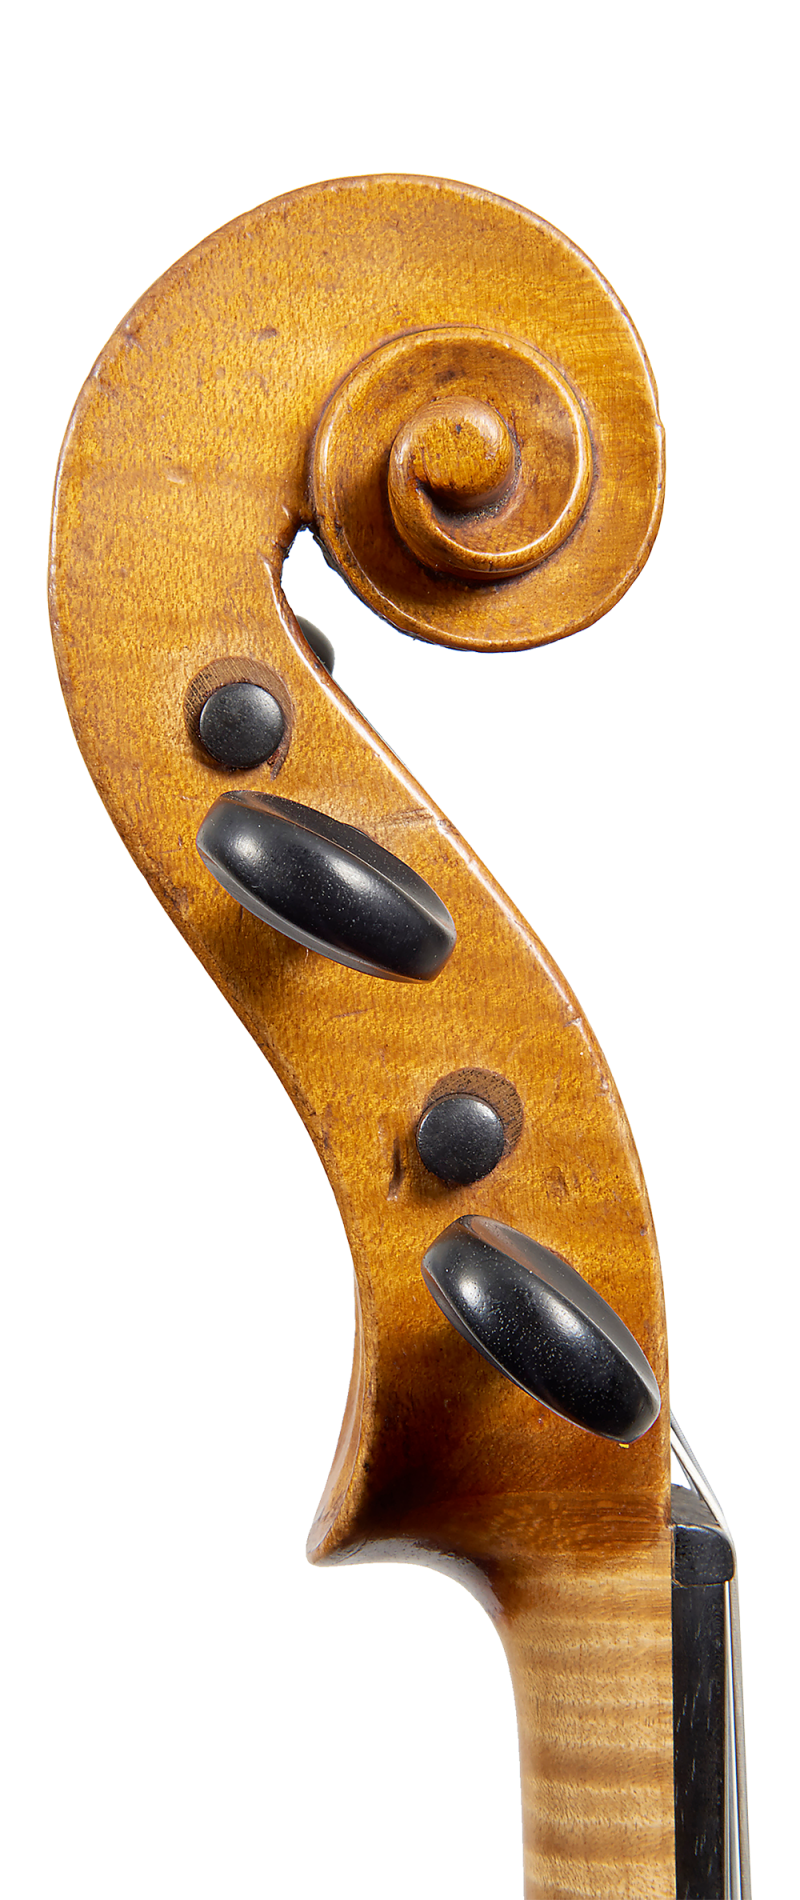 Scroll of a violin by Johannes Theodorus Cuypers, The Hague, 1807